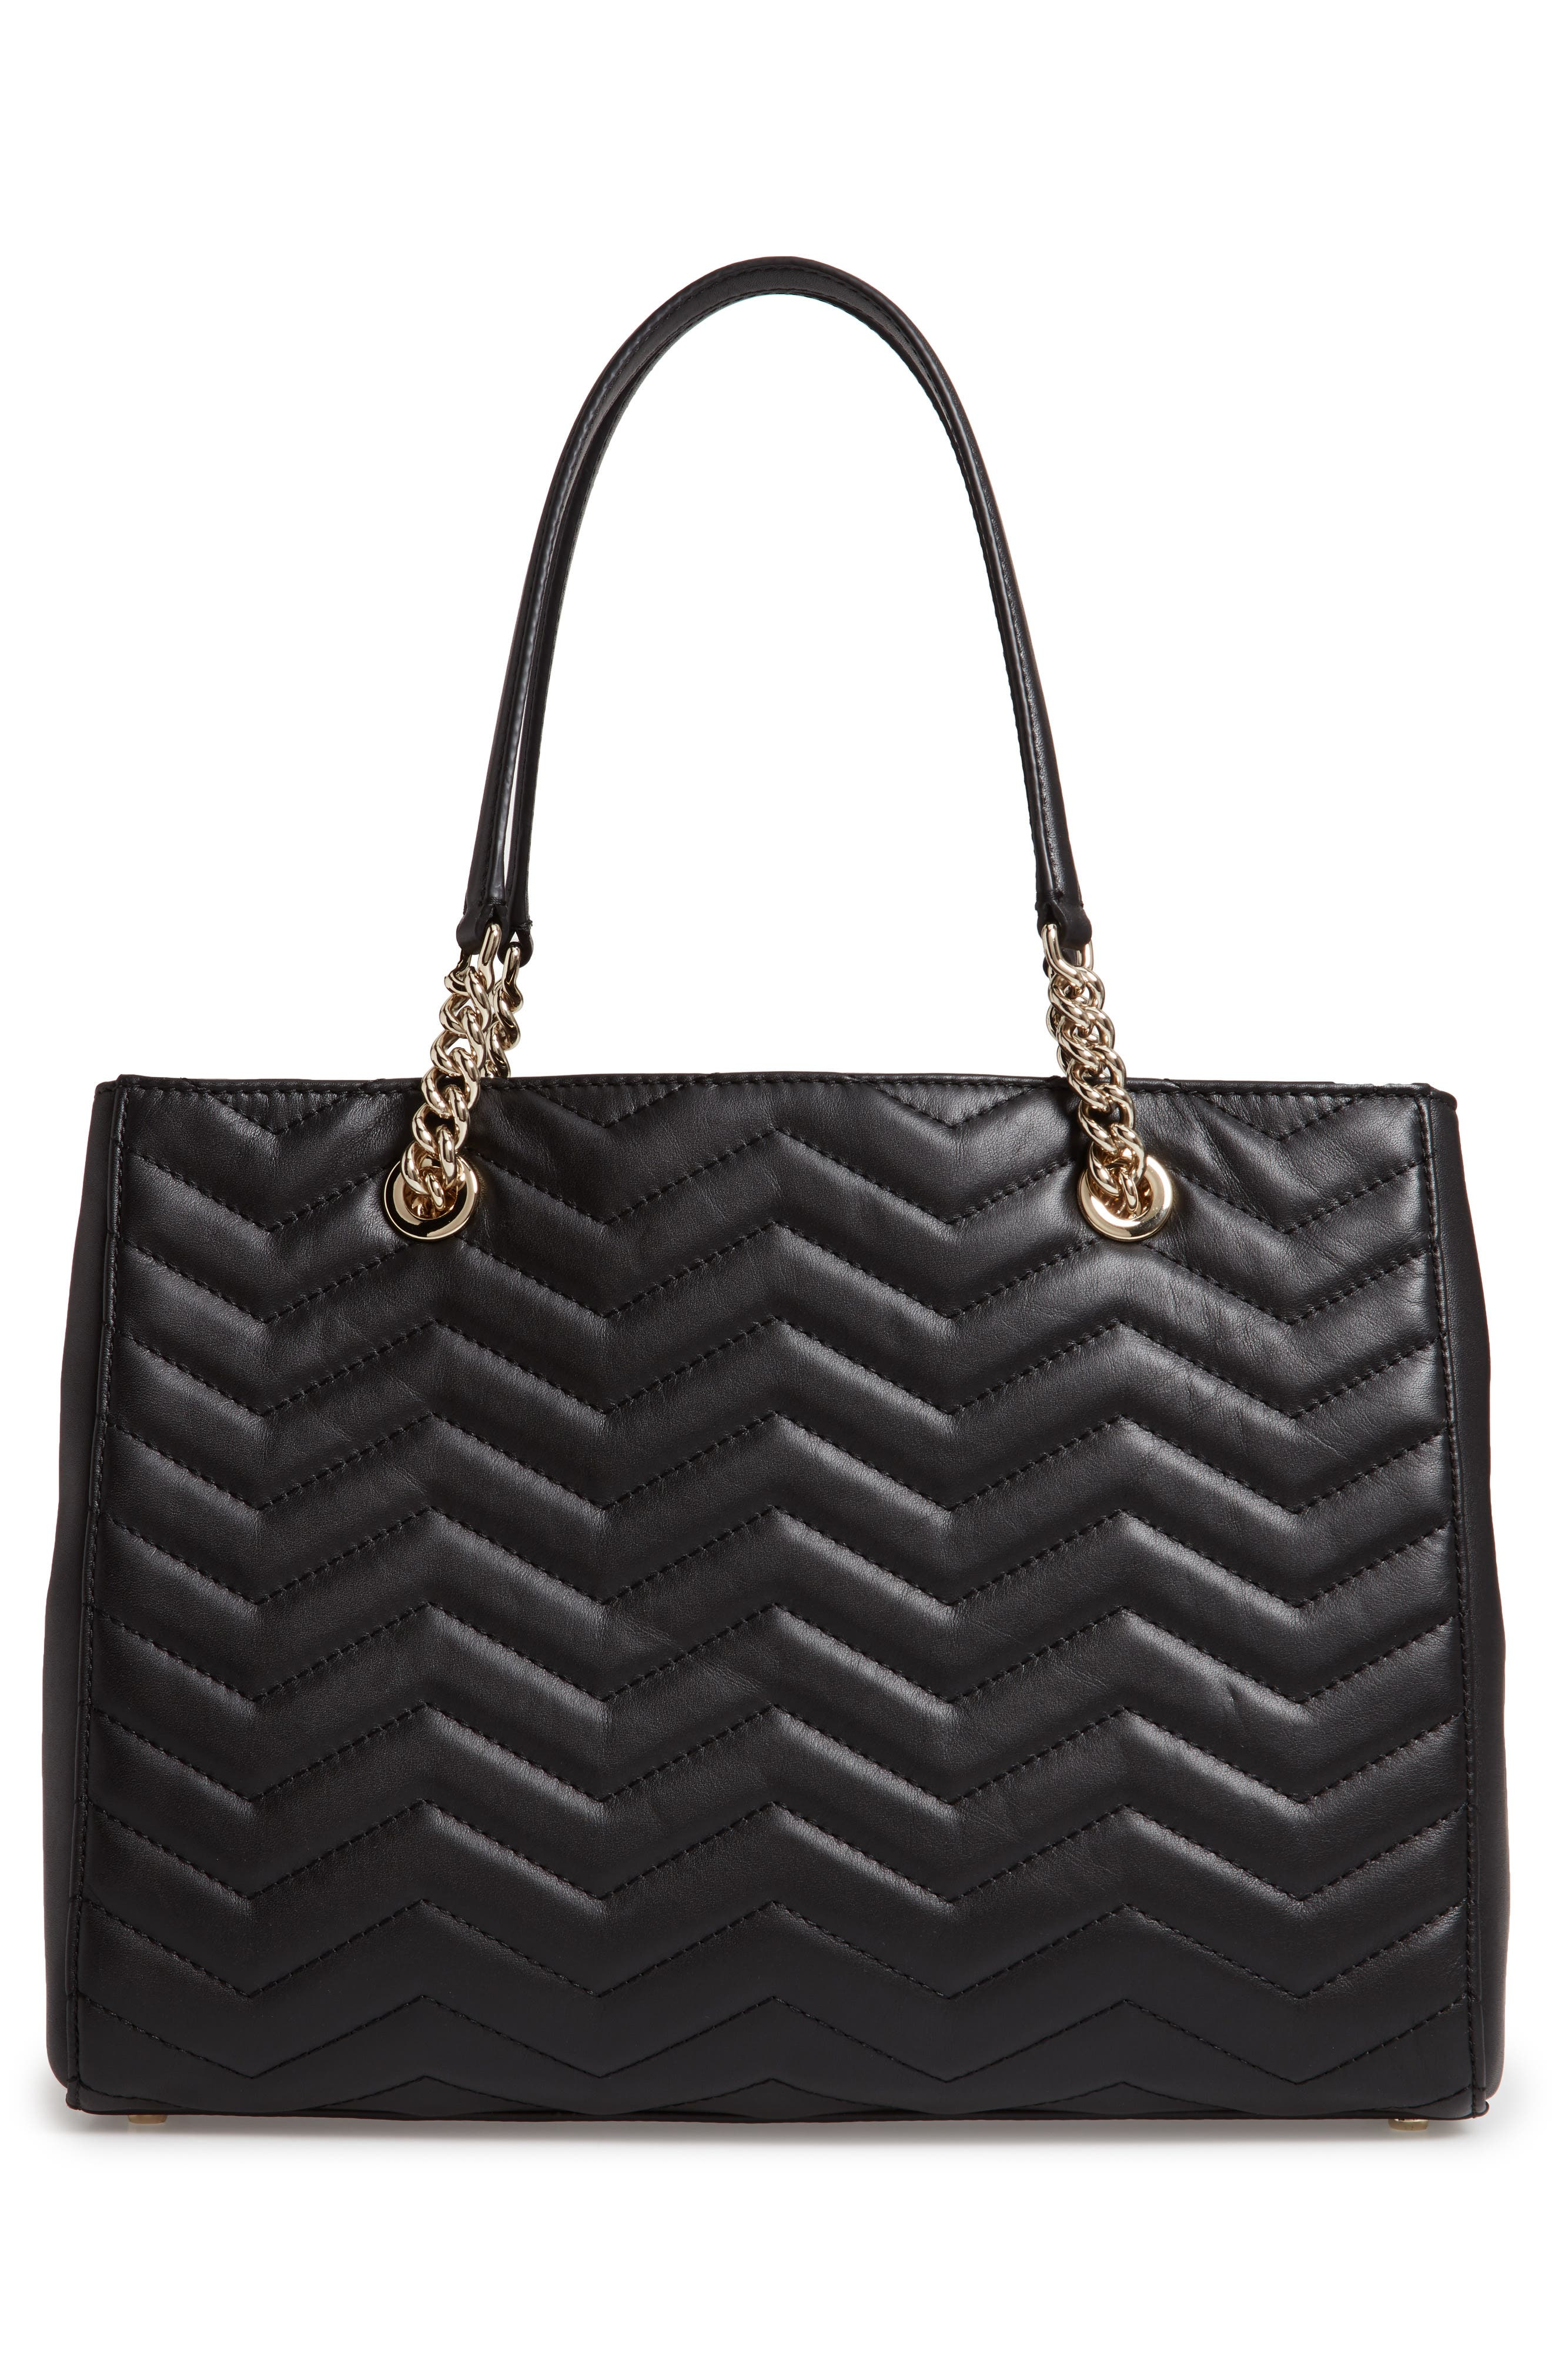 reese park courtnee leather tote,                             Alternate thumbnail 3, color,                             BLACK